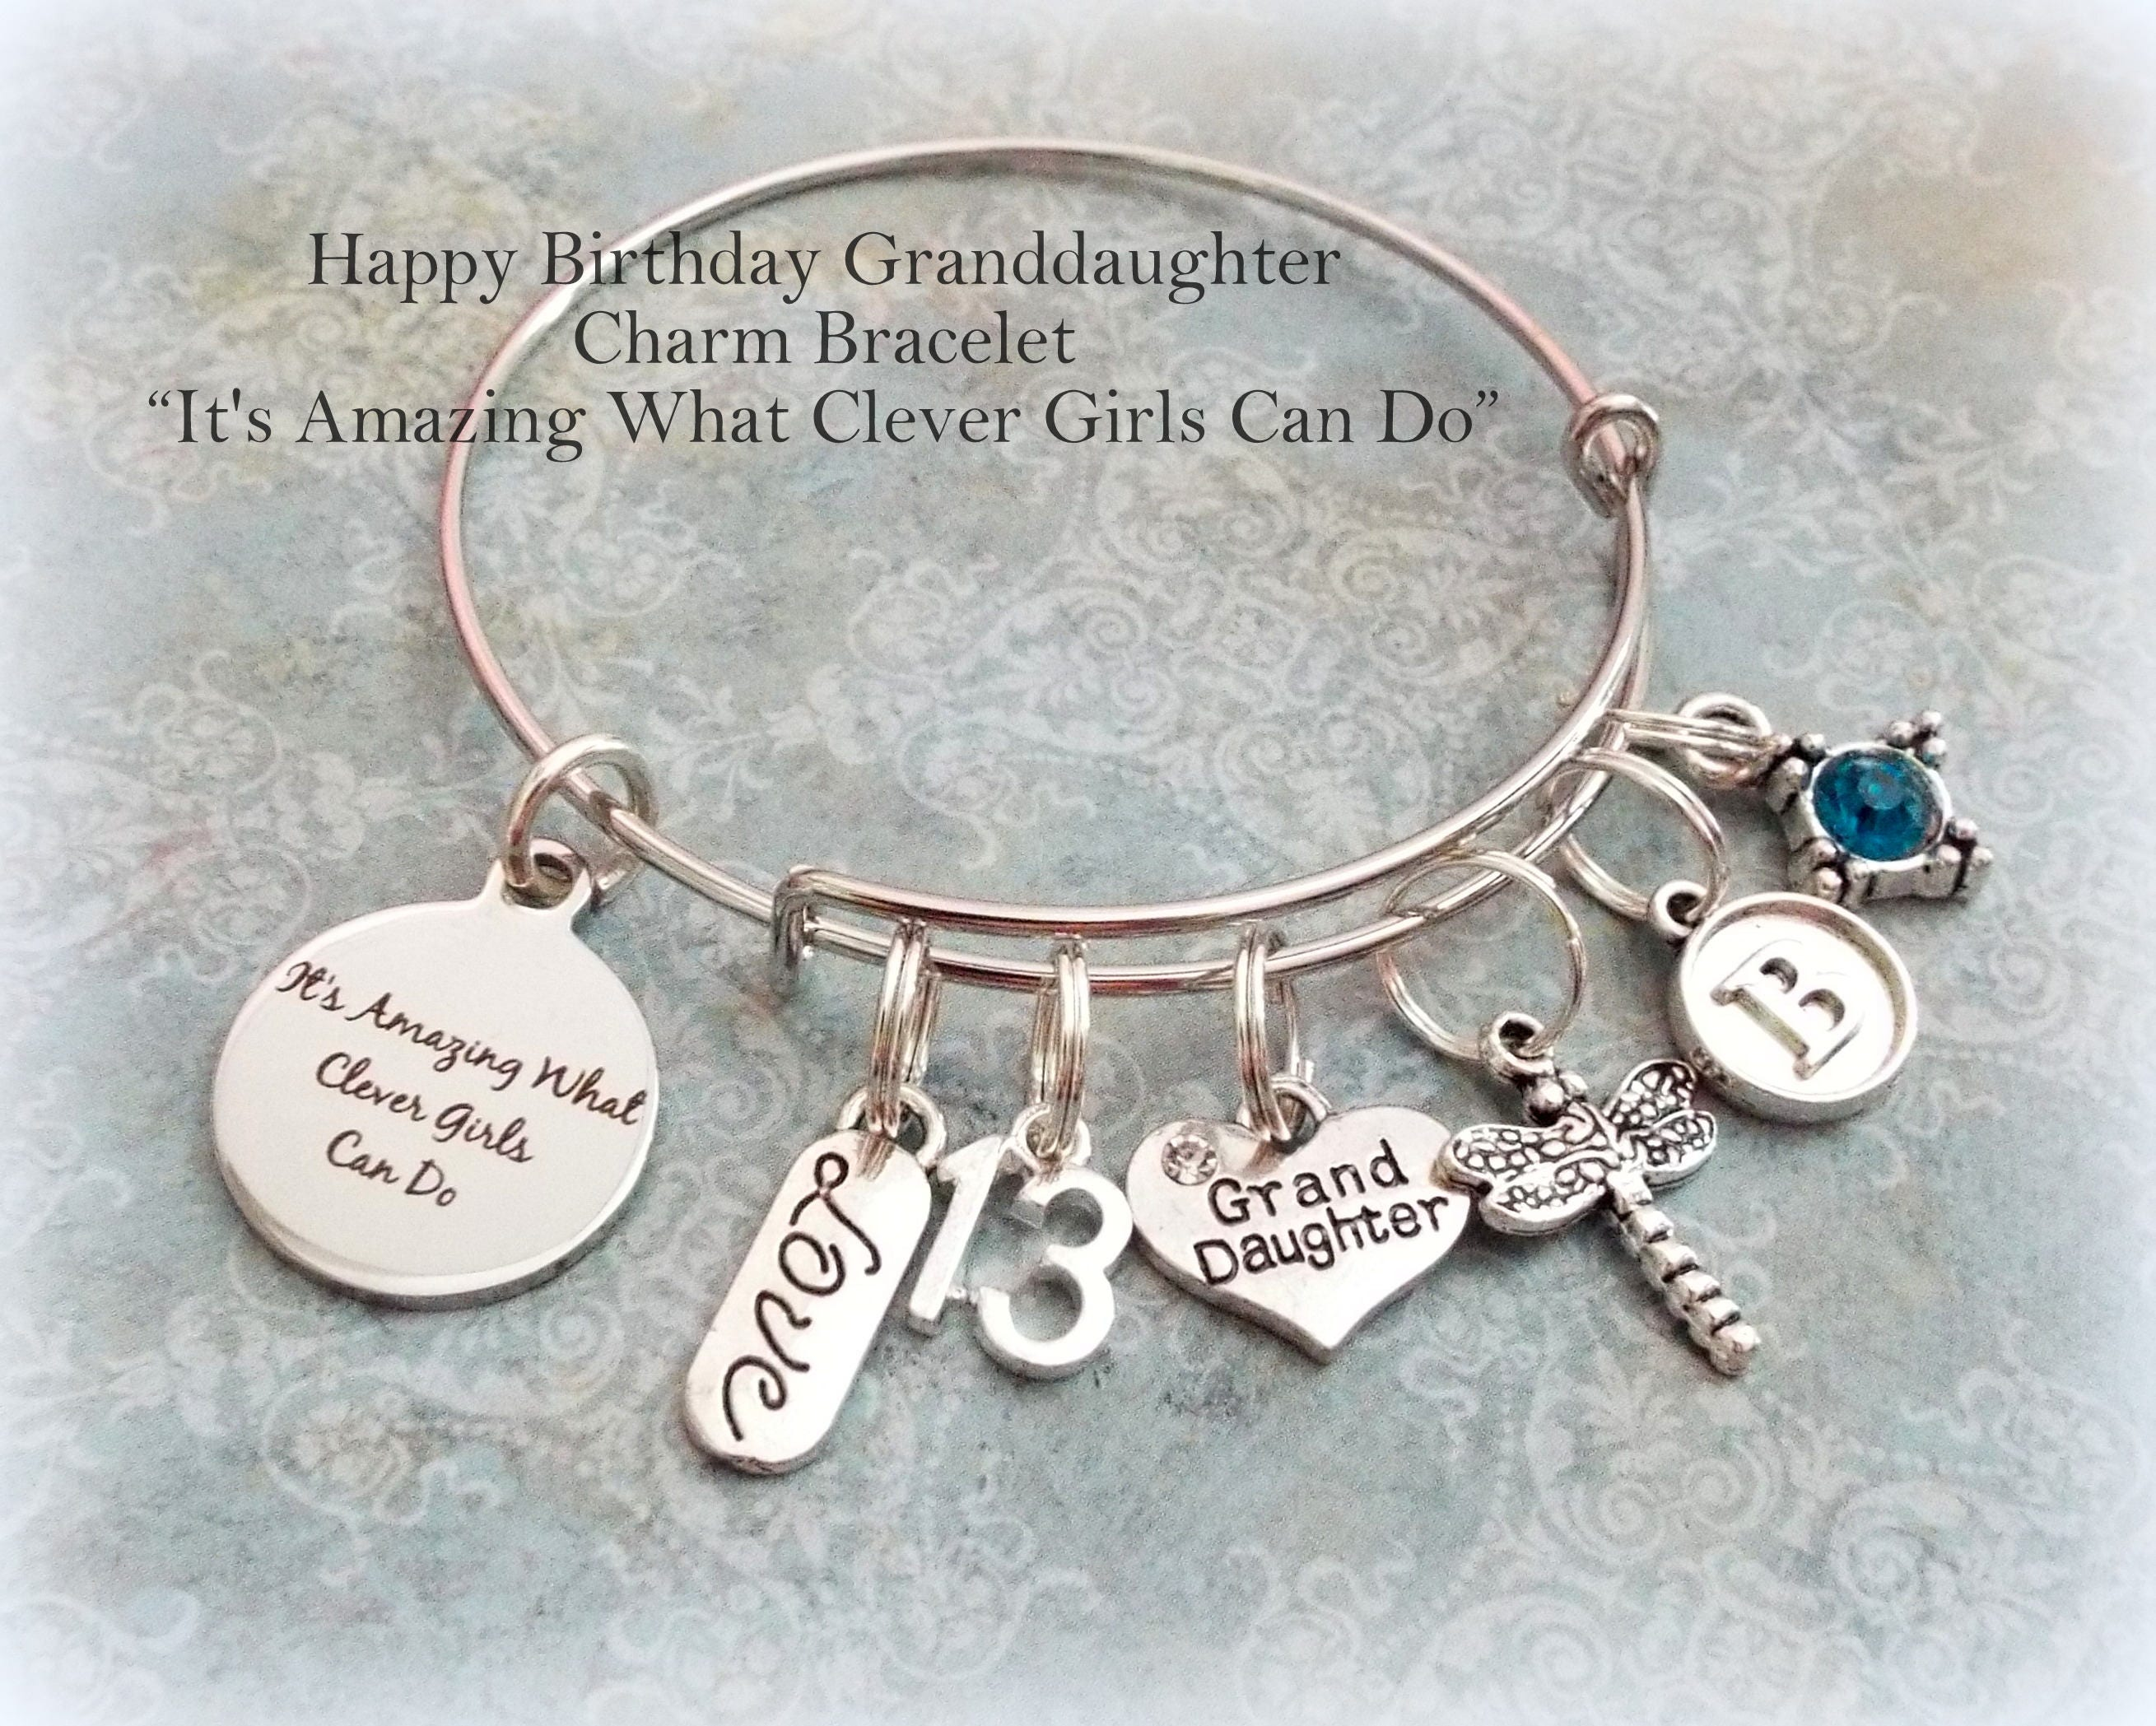 Happy Birthday Charm Bracelet For Granddaughter Gift 13 Year Old Girl Custom To From Grandmother